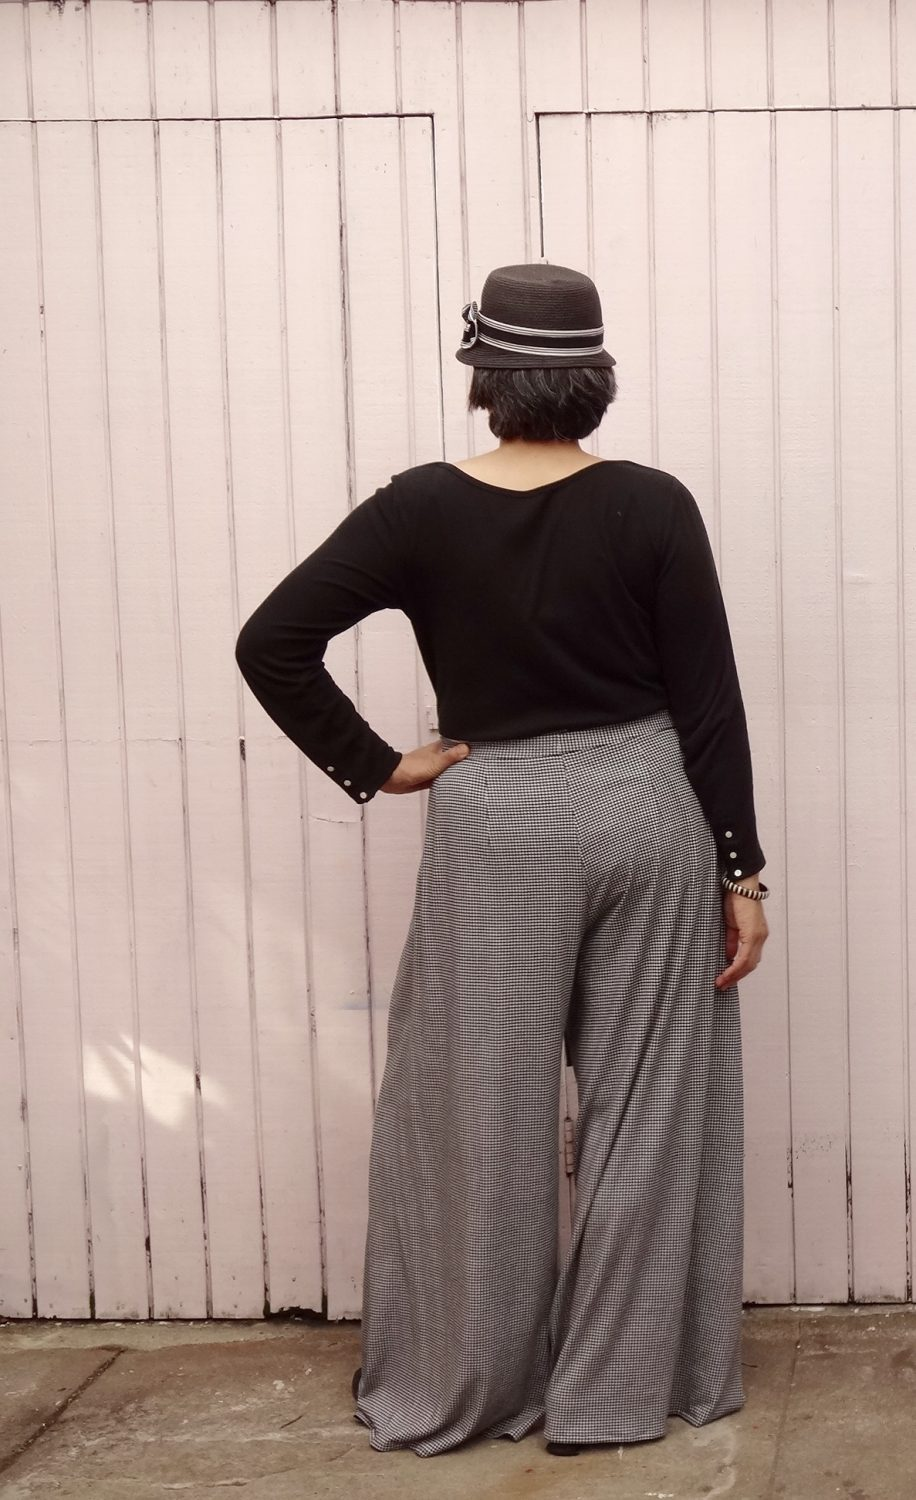 Vogue 9191 - Wrap pants in houndstooth jersey - back view - V9191